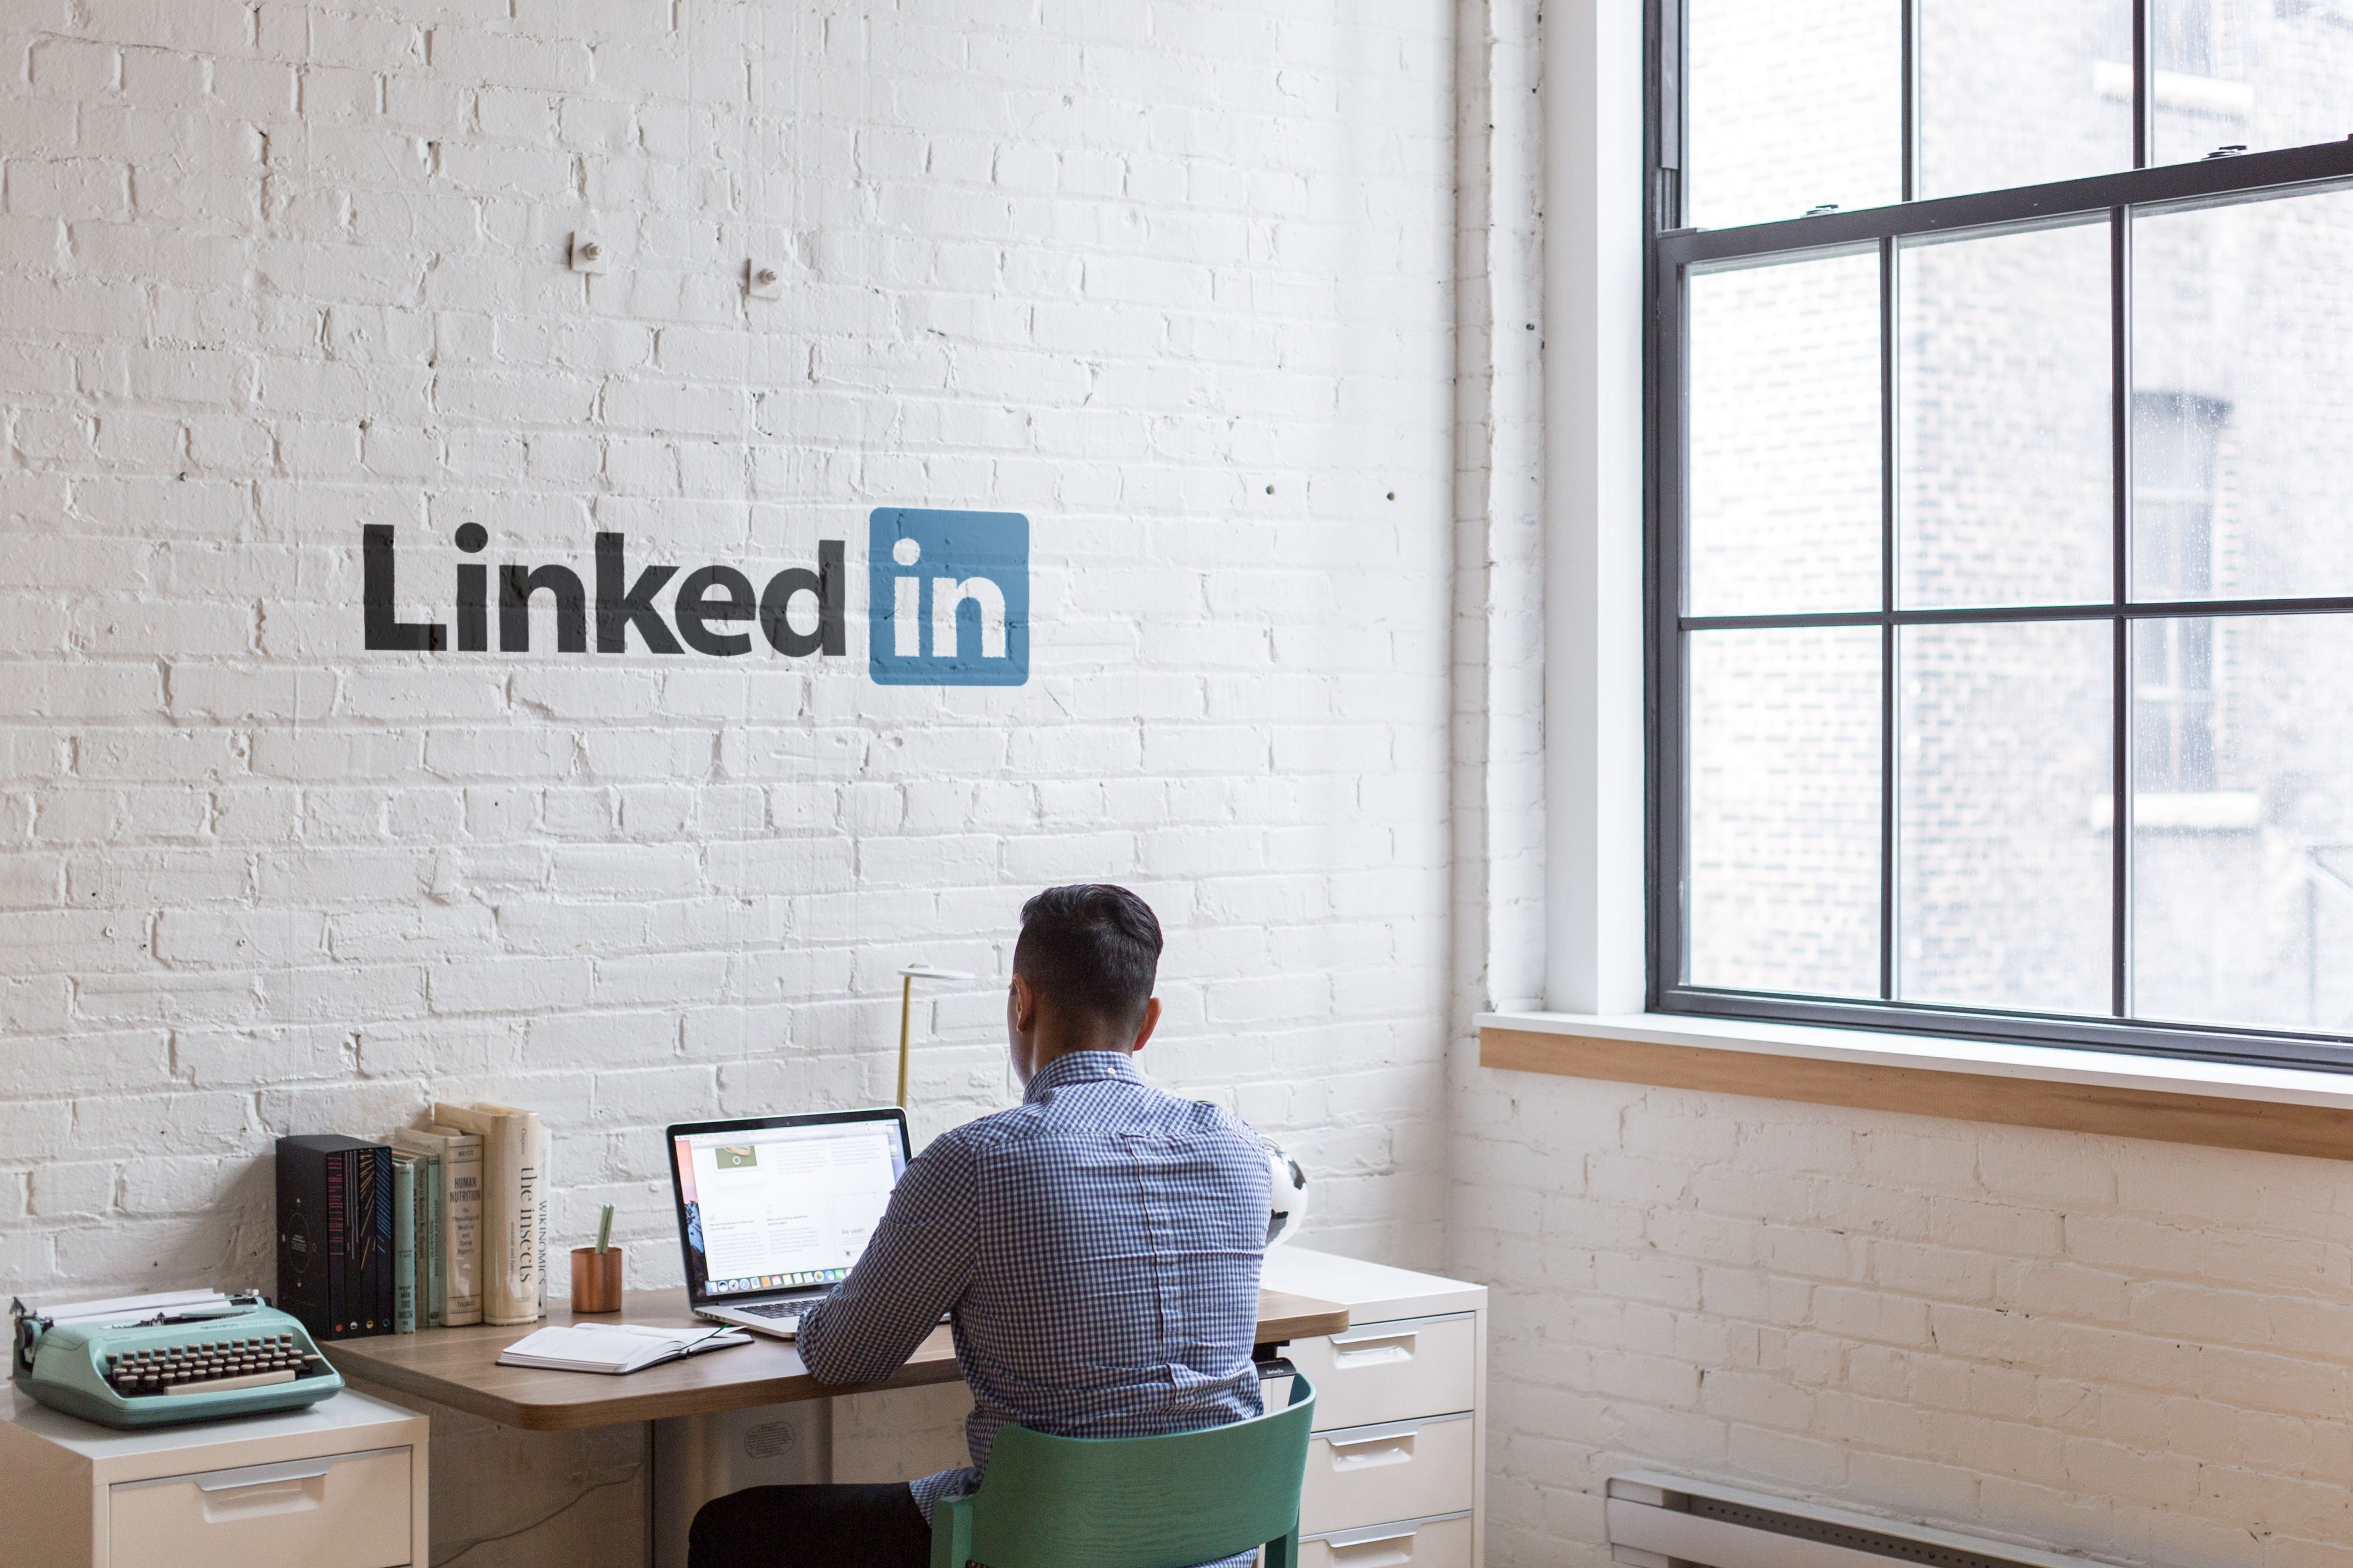 15th Year Anniversary, Your Favorite Social Media, Linkedin — Redesigned!